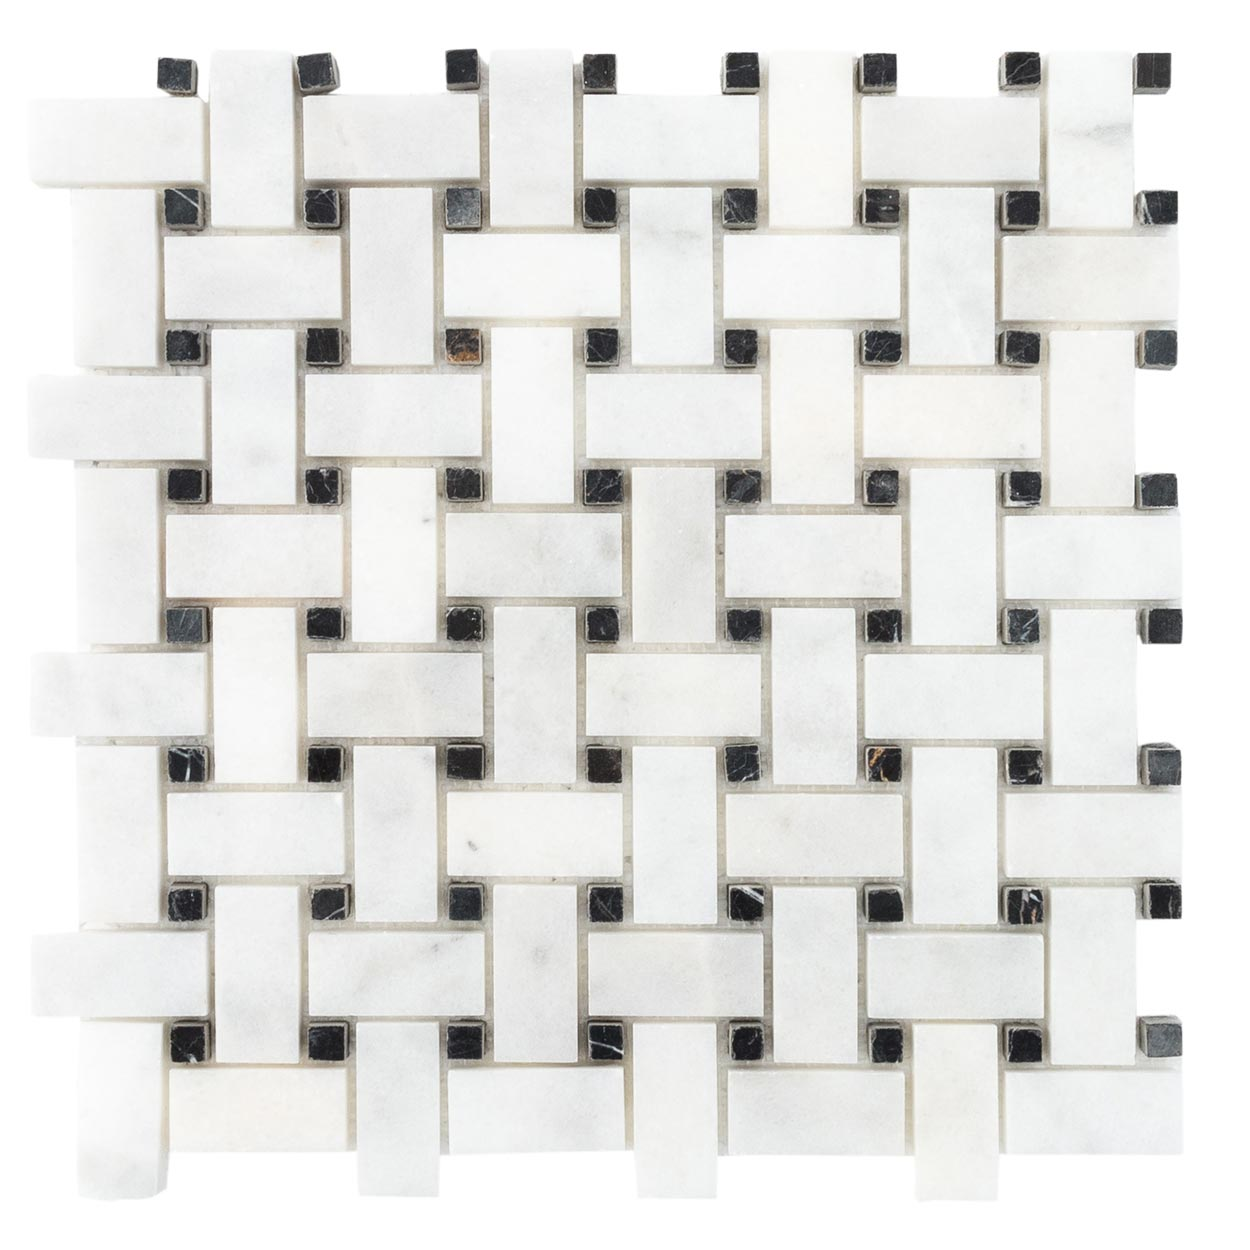 1-carrara_white_basketweave_marble_mosaic_polished_www.thulahome.com_8728_piece_top